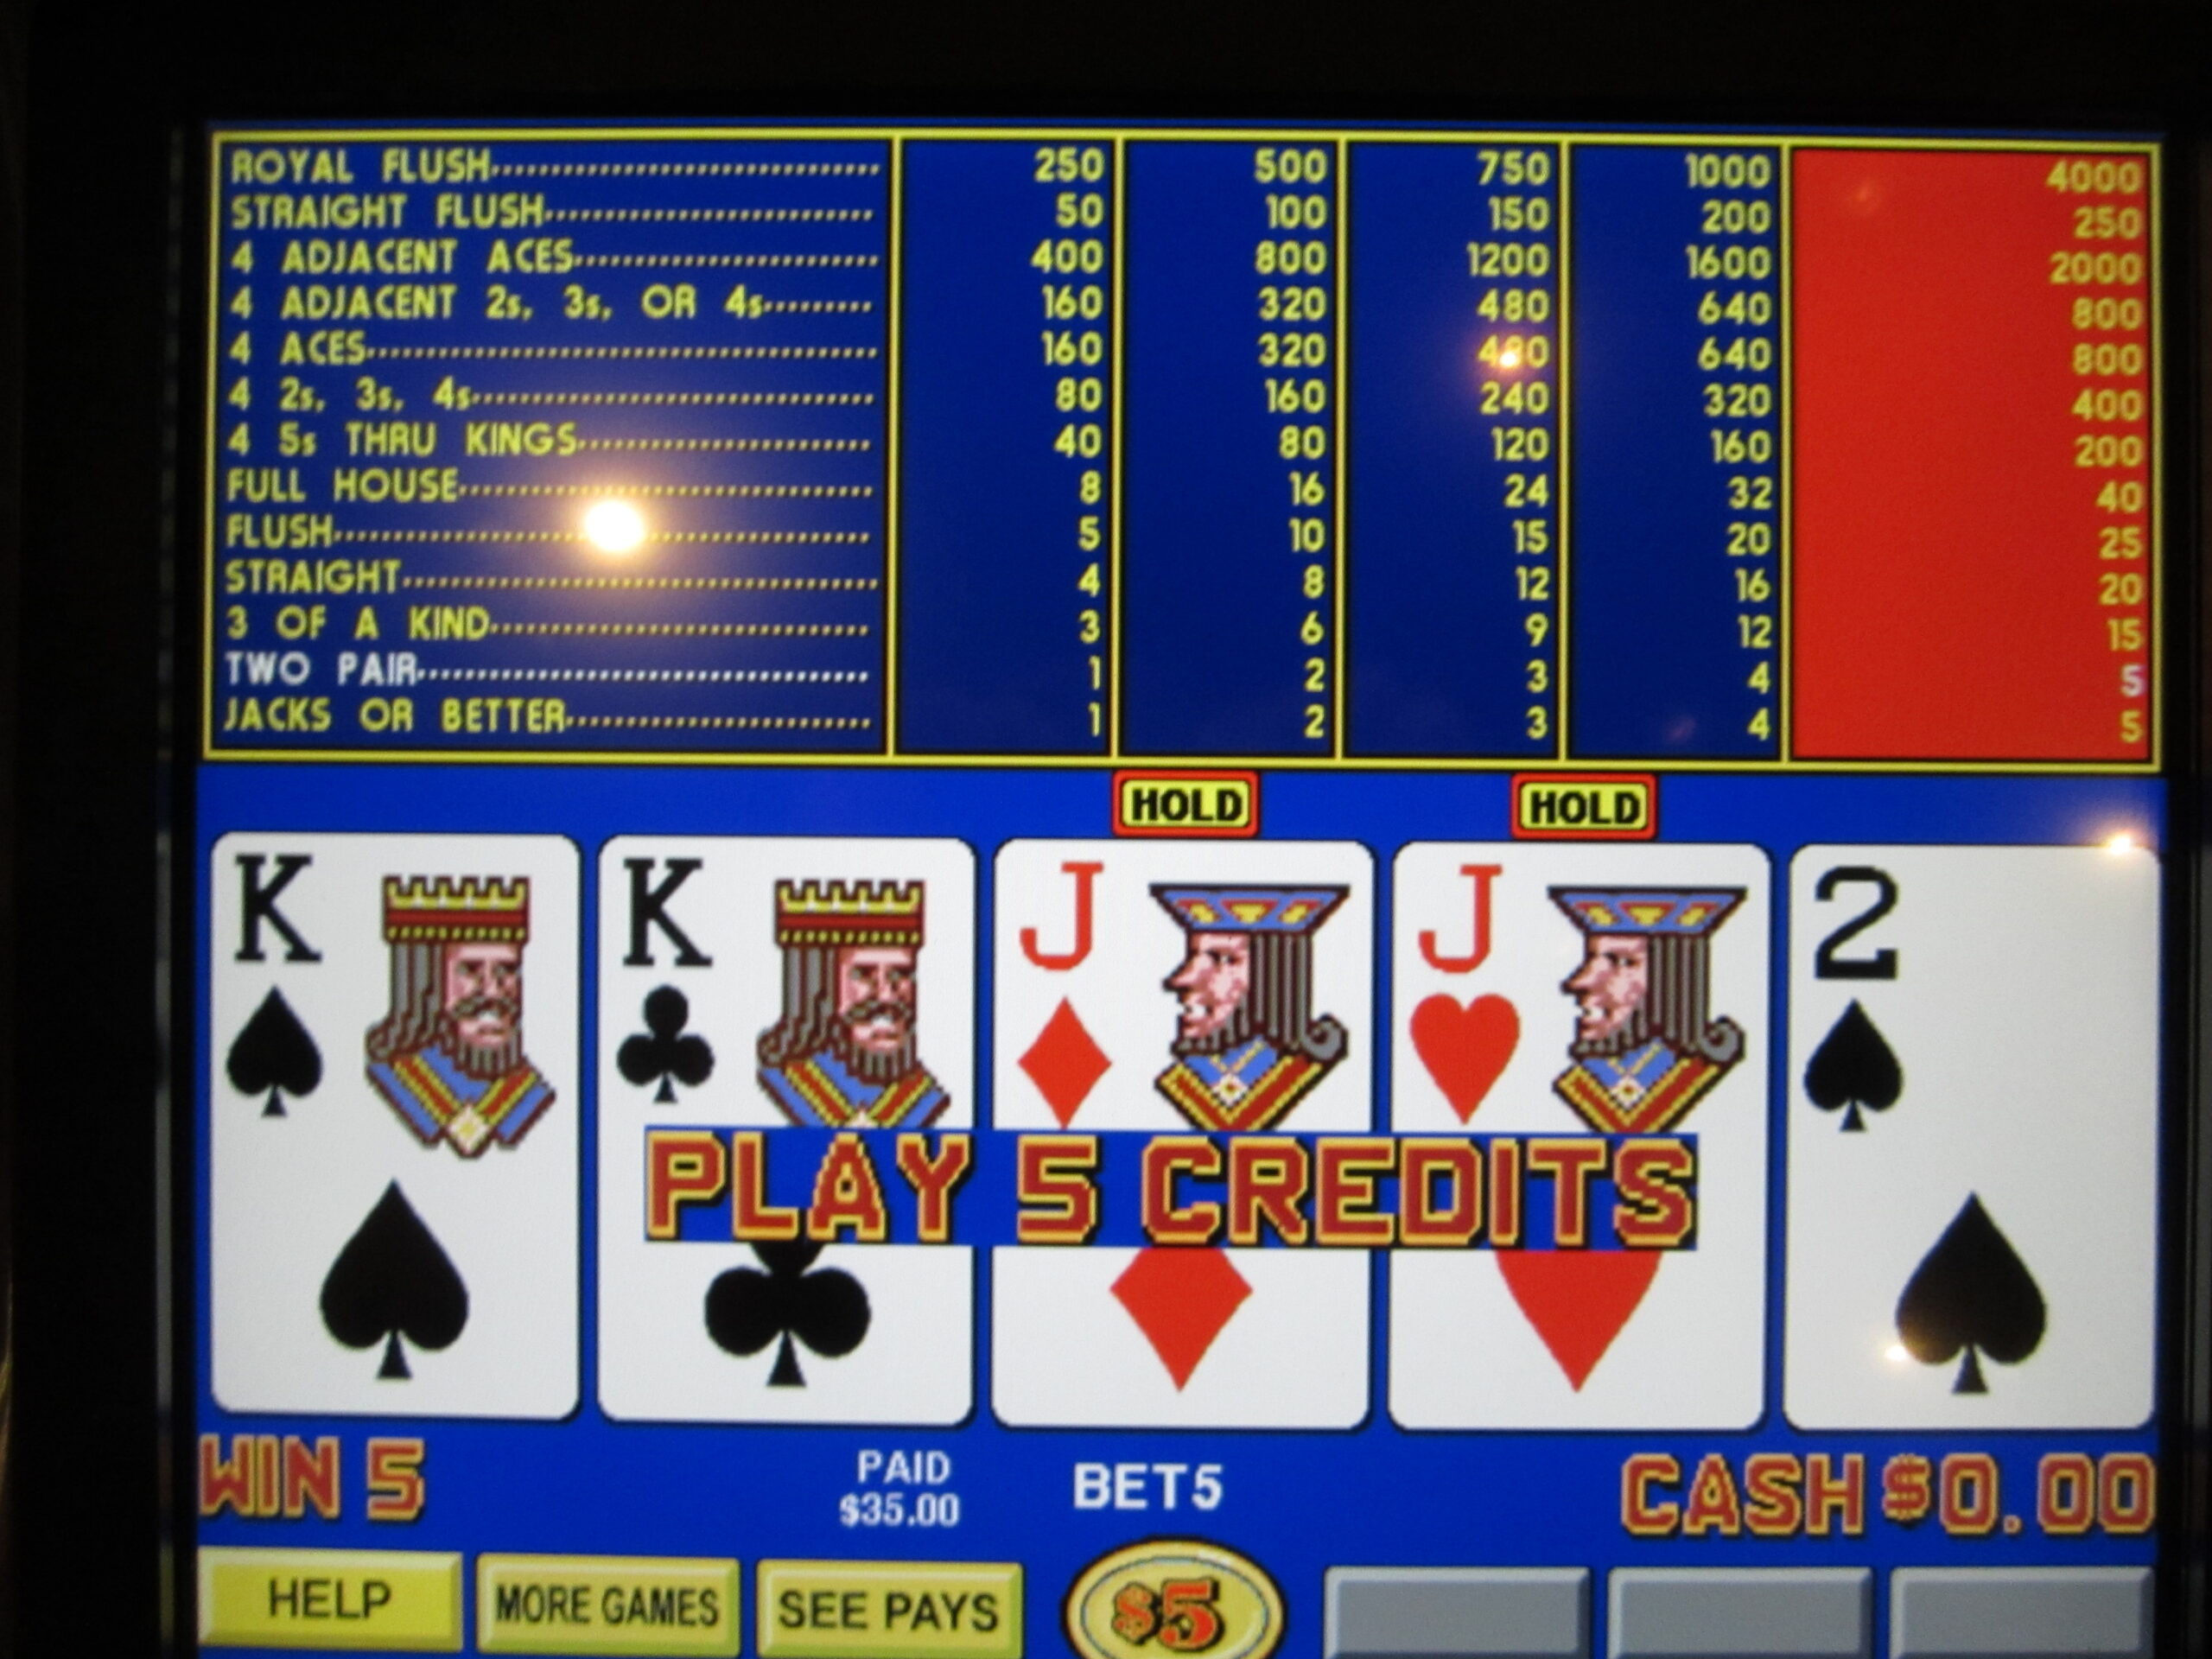 How to win more often in slot machines?